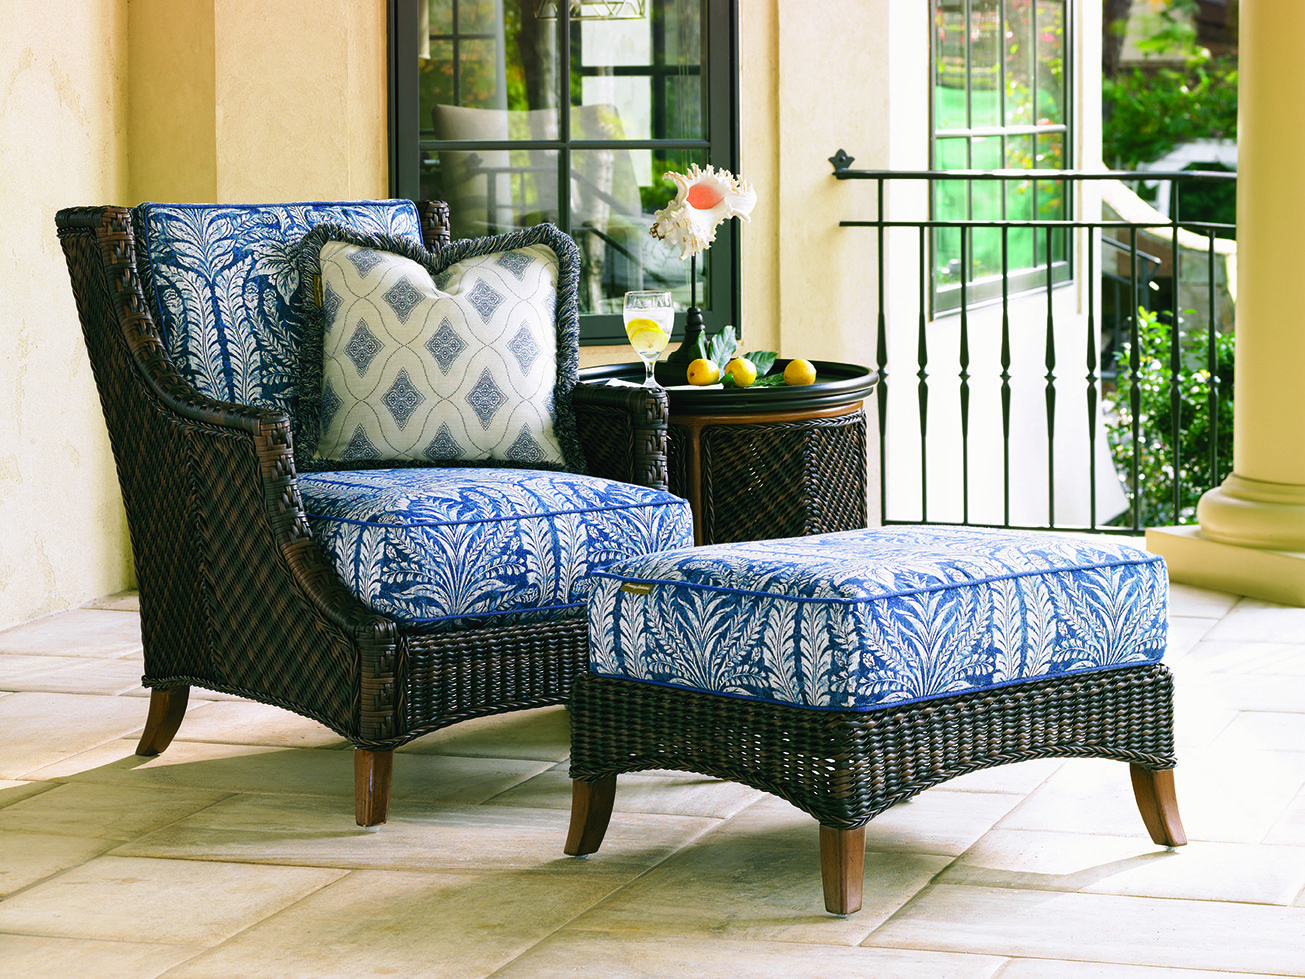 Tommy bahama island estate lanai collection outdoor wicker lounge chair and ottoman